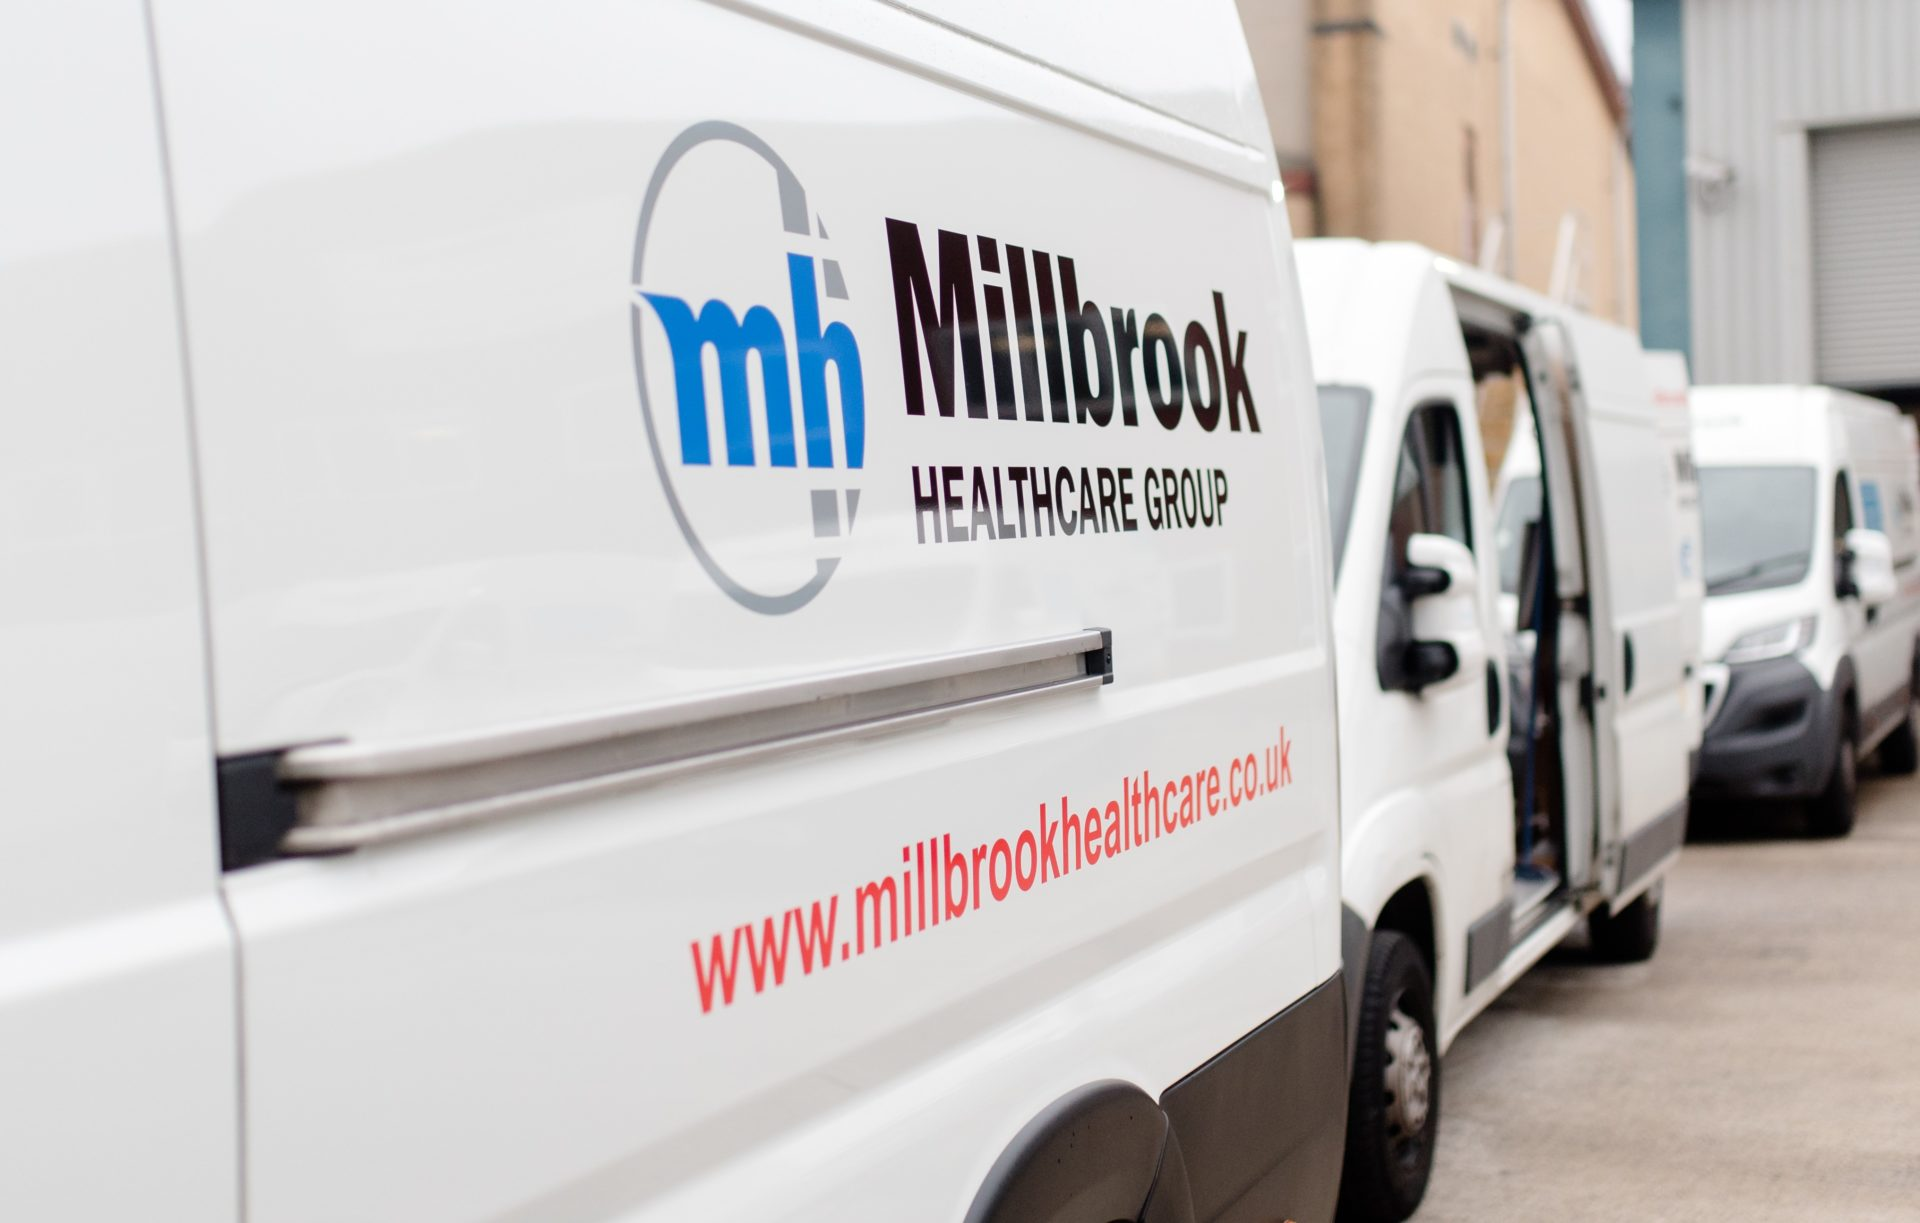 Millbrook Healthcare